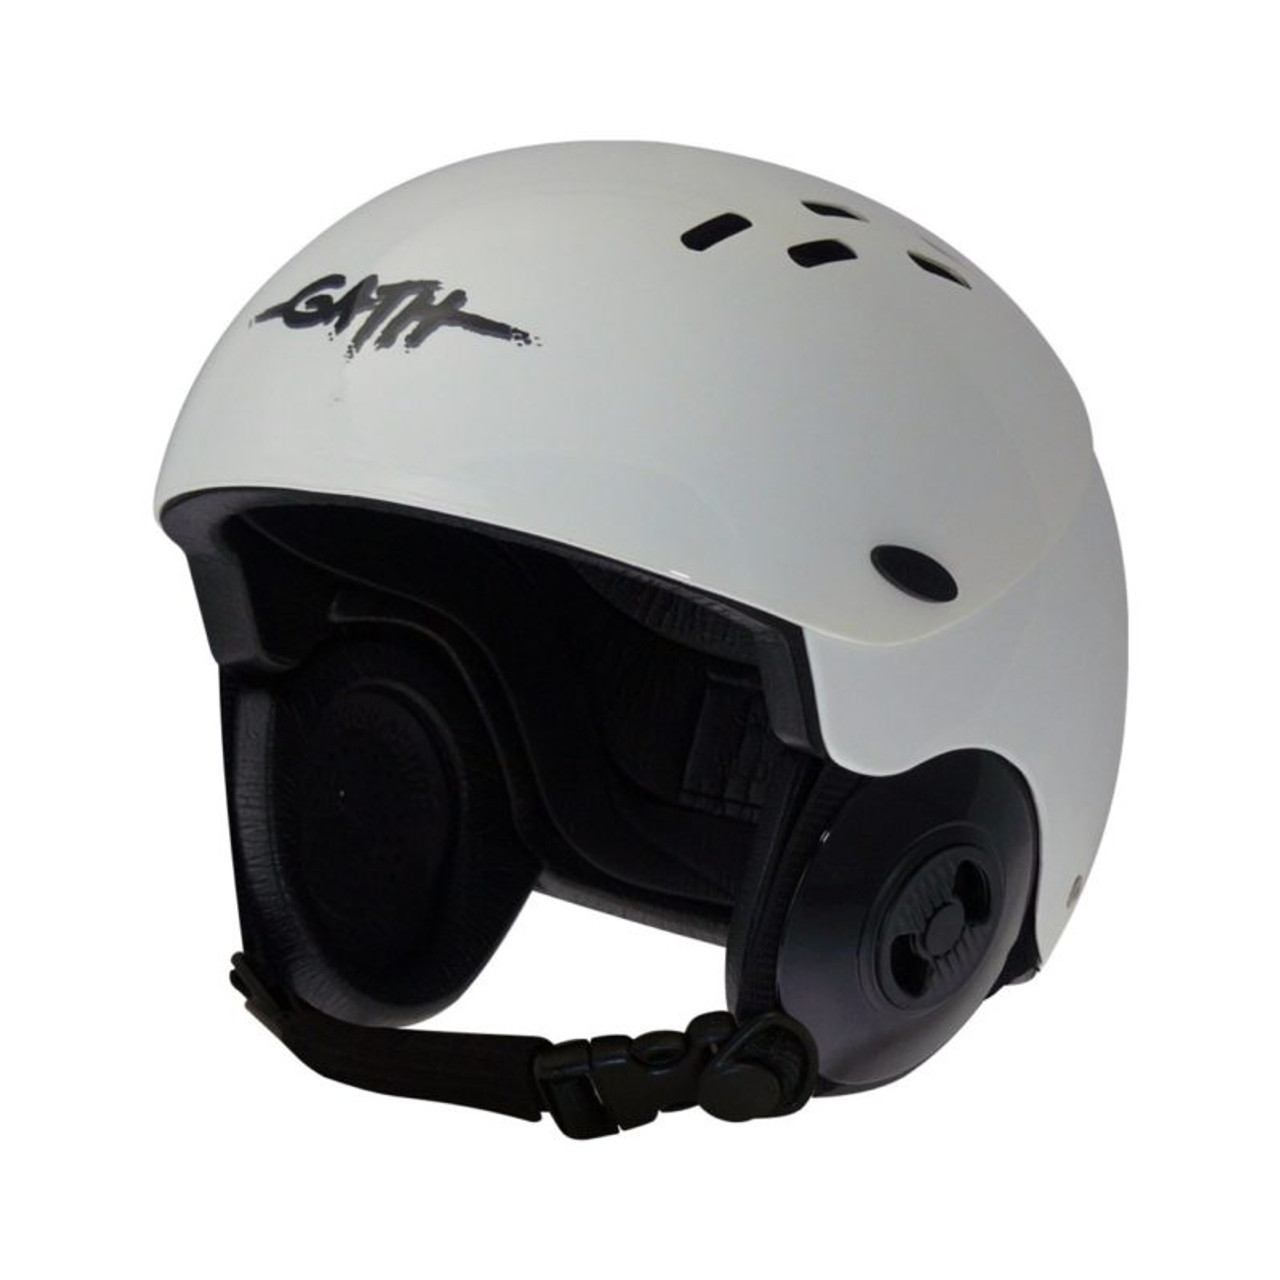 Gath Gedi Sports Helmet - White